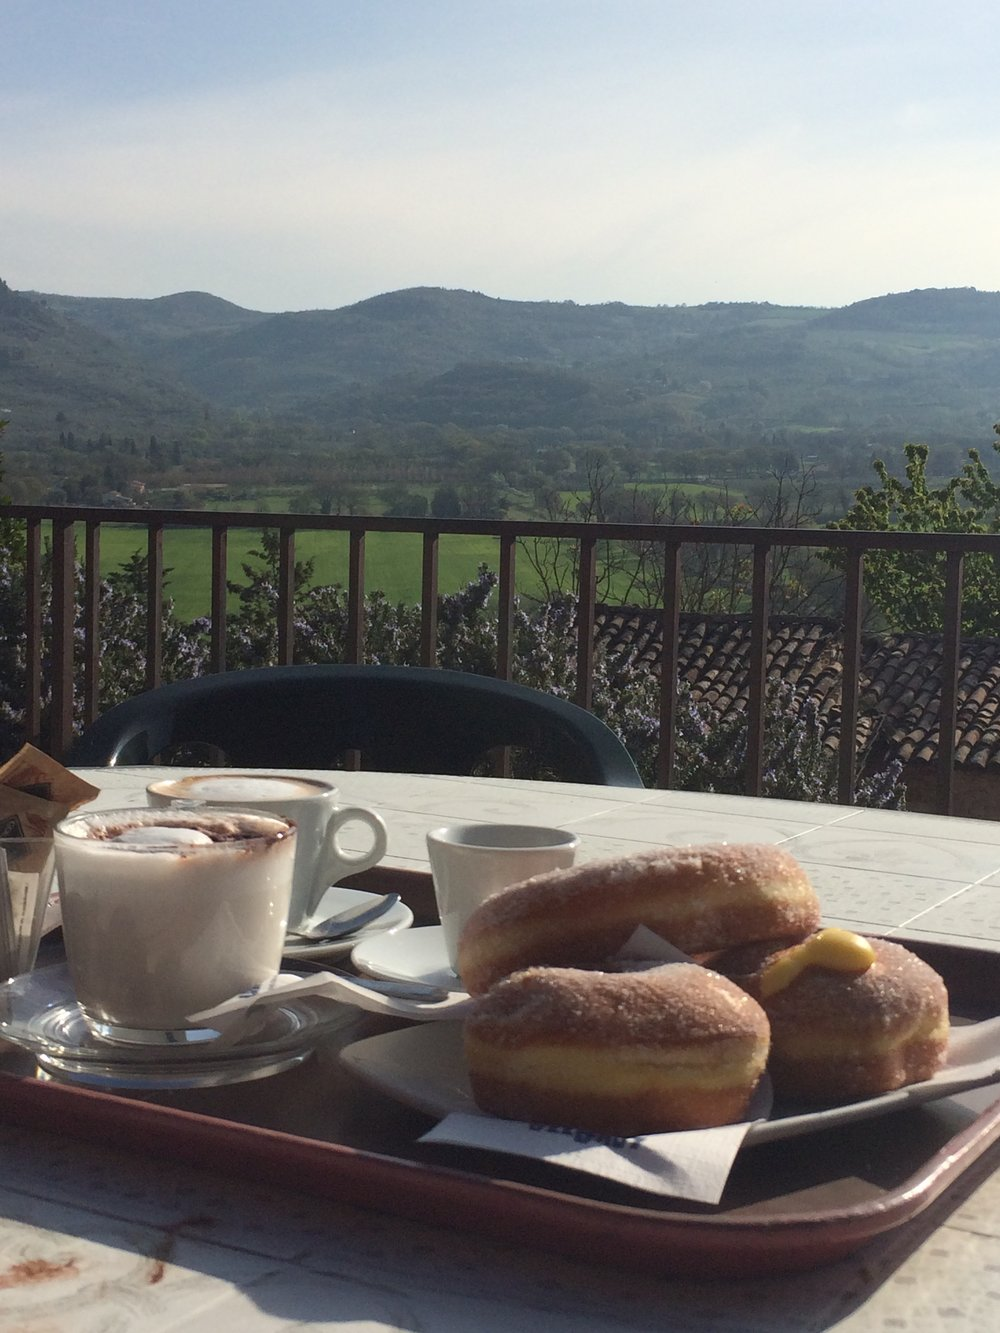 Breakfast at Bar Bonci in Spello, umbria